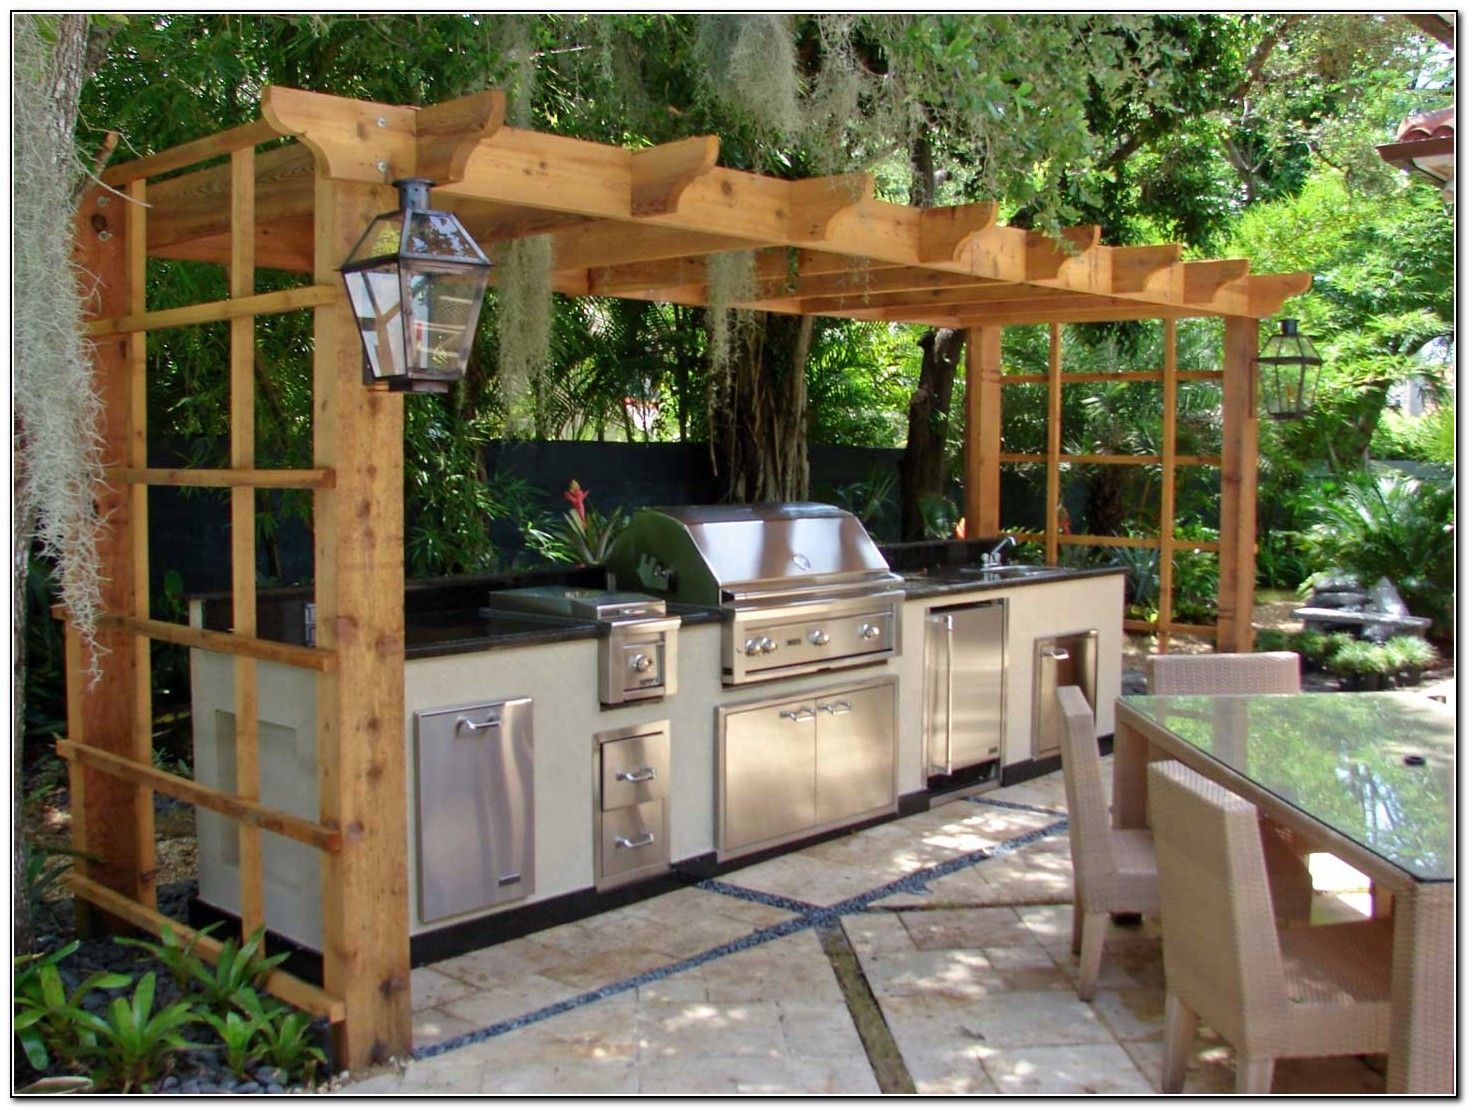 Outdoor Kitchen Designs Uk | Outdoor Dining | Pinterest | Outdoor ...